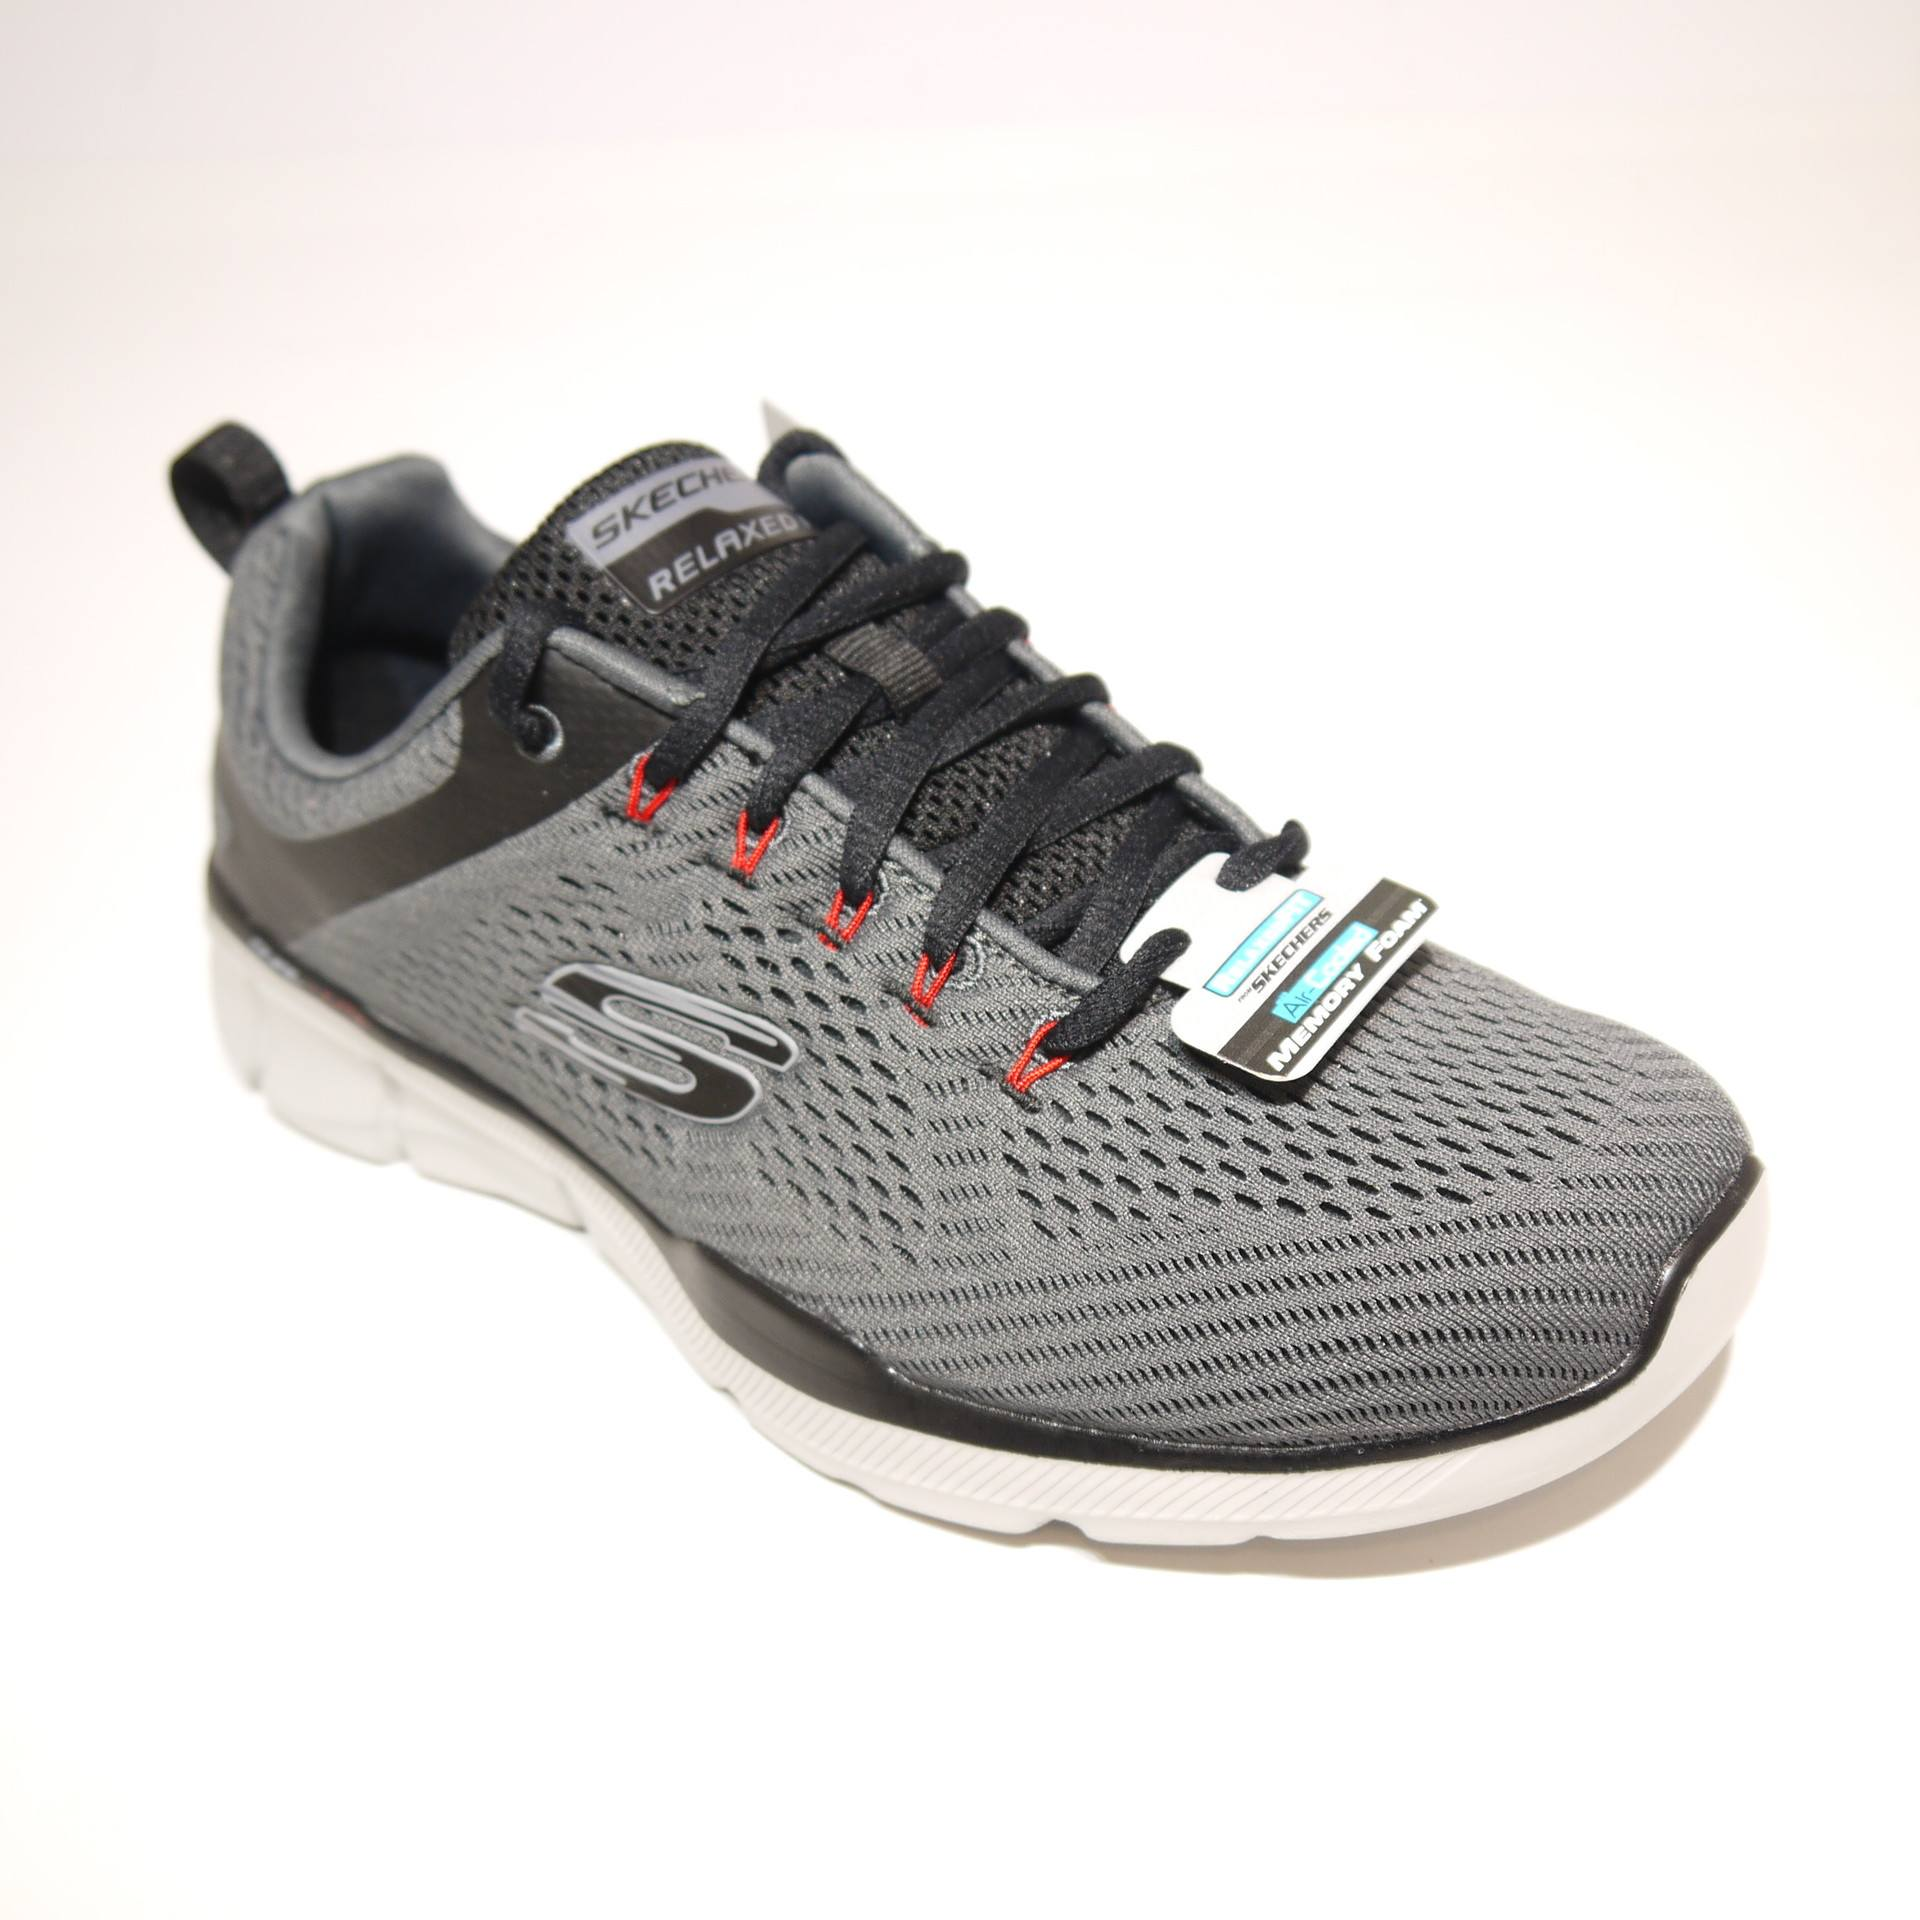 Skechers Relaxed Fit: Equalizer 3.0 CharcoalBlack